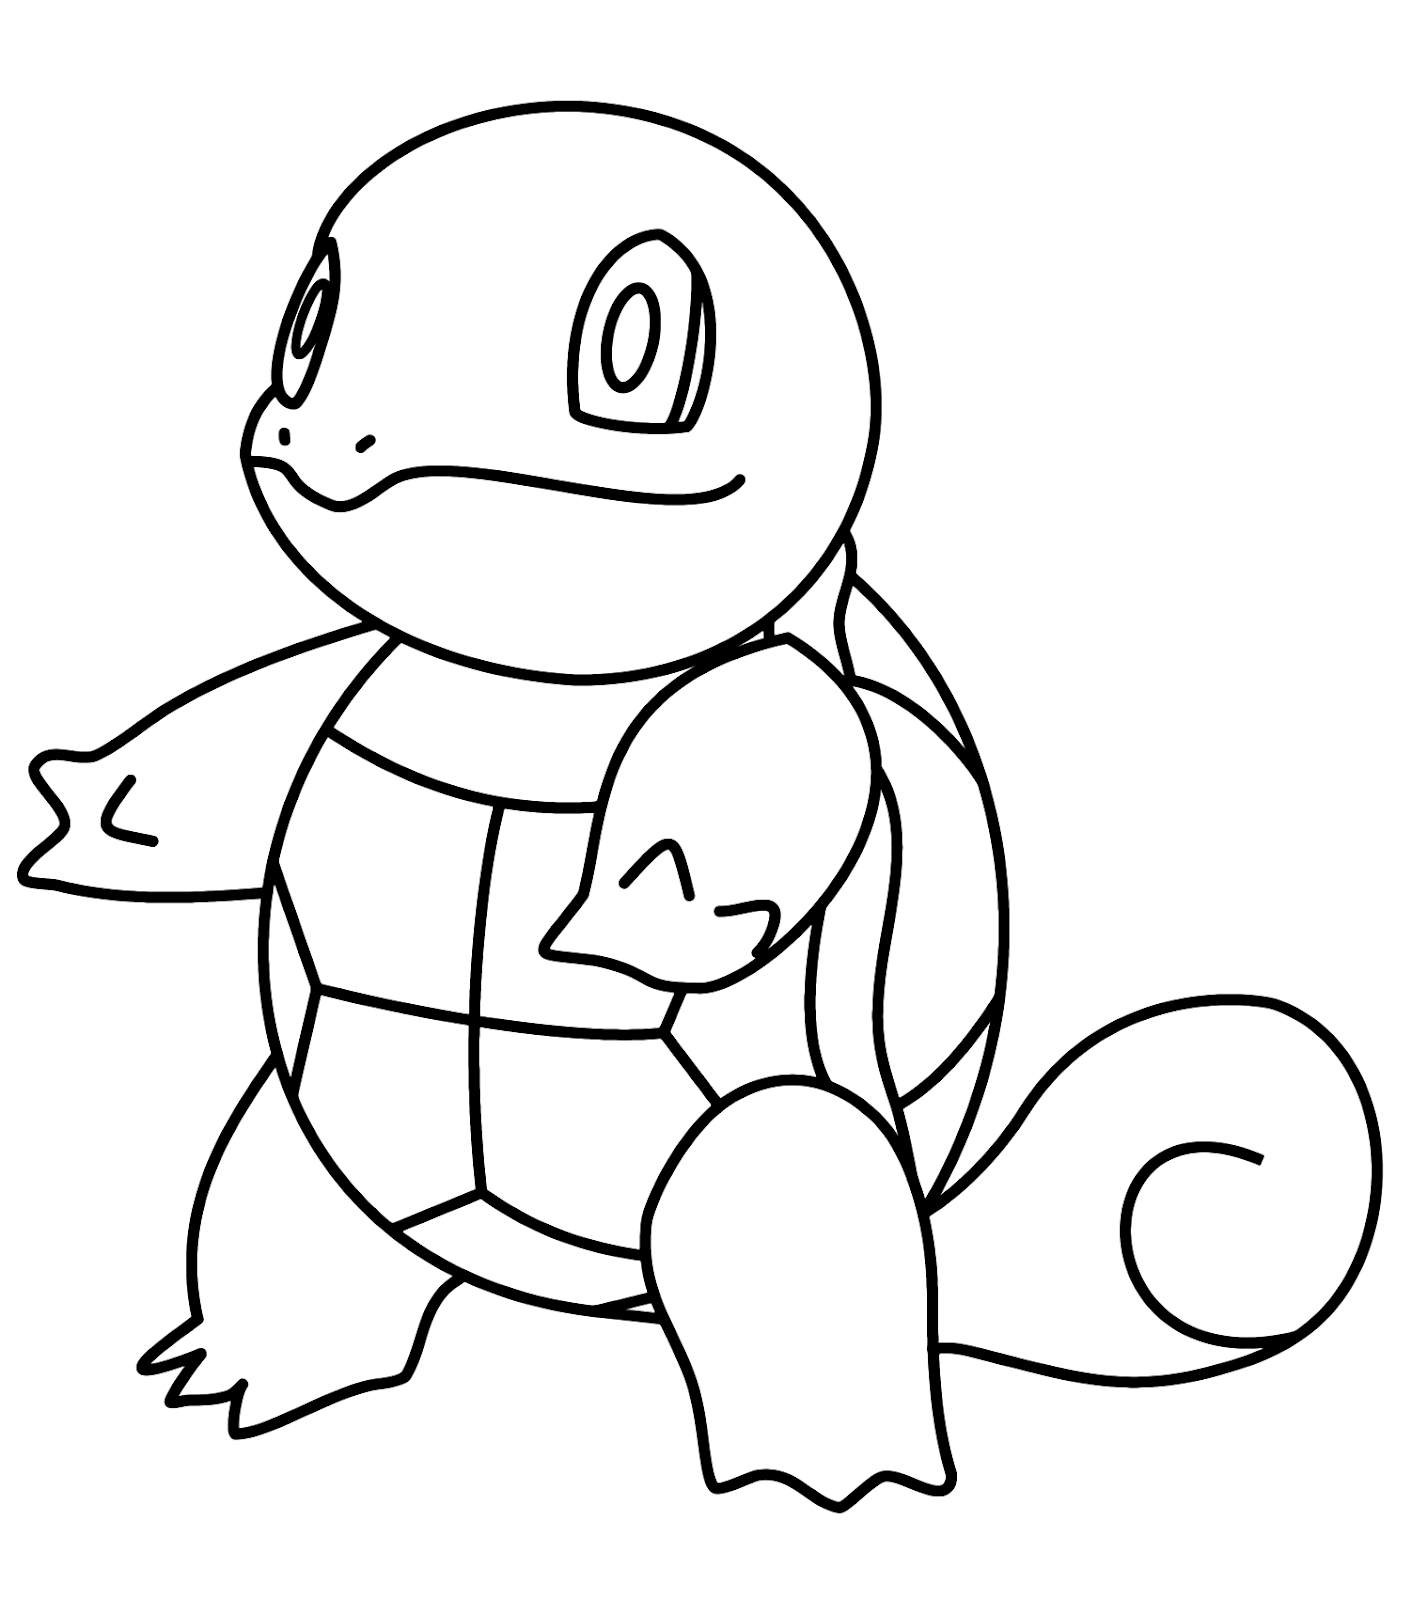 New Squirtle Coloring Pages Download - Free Pokemon ...